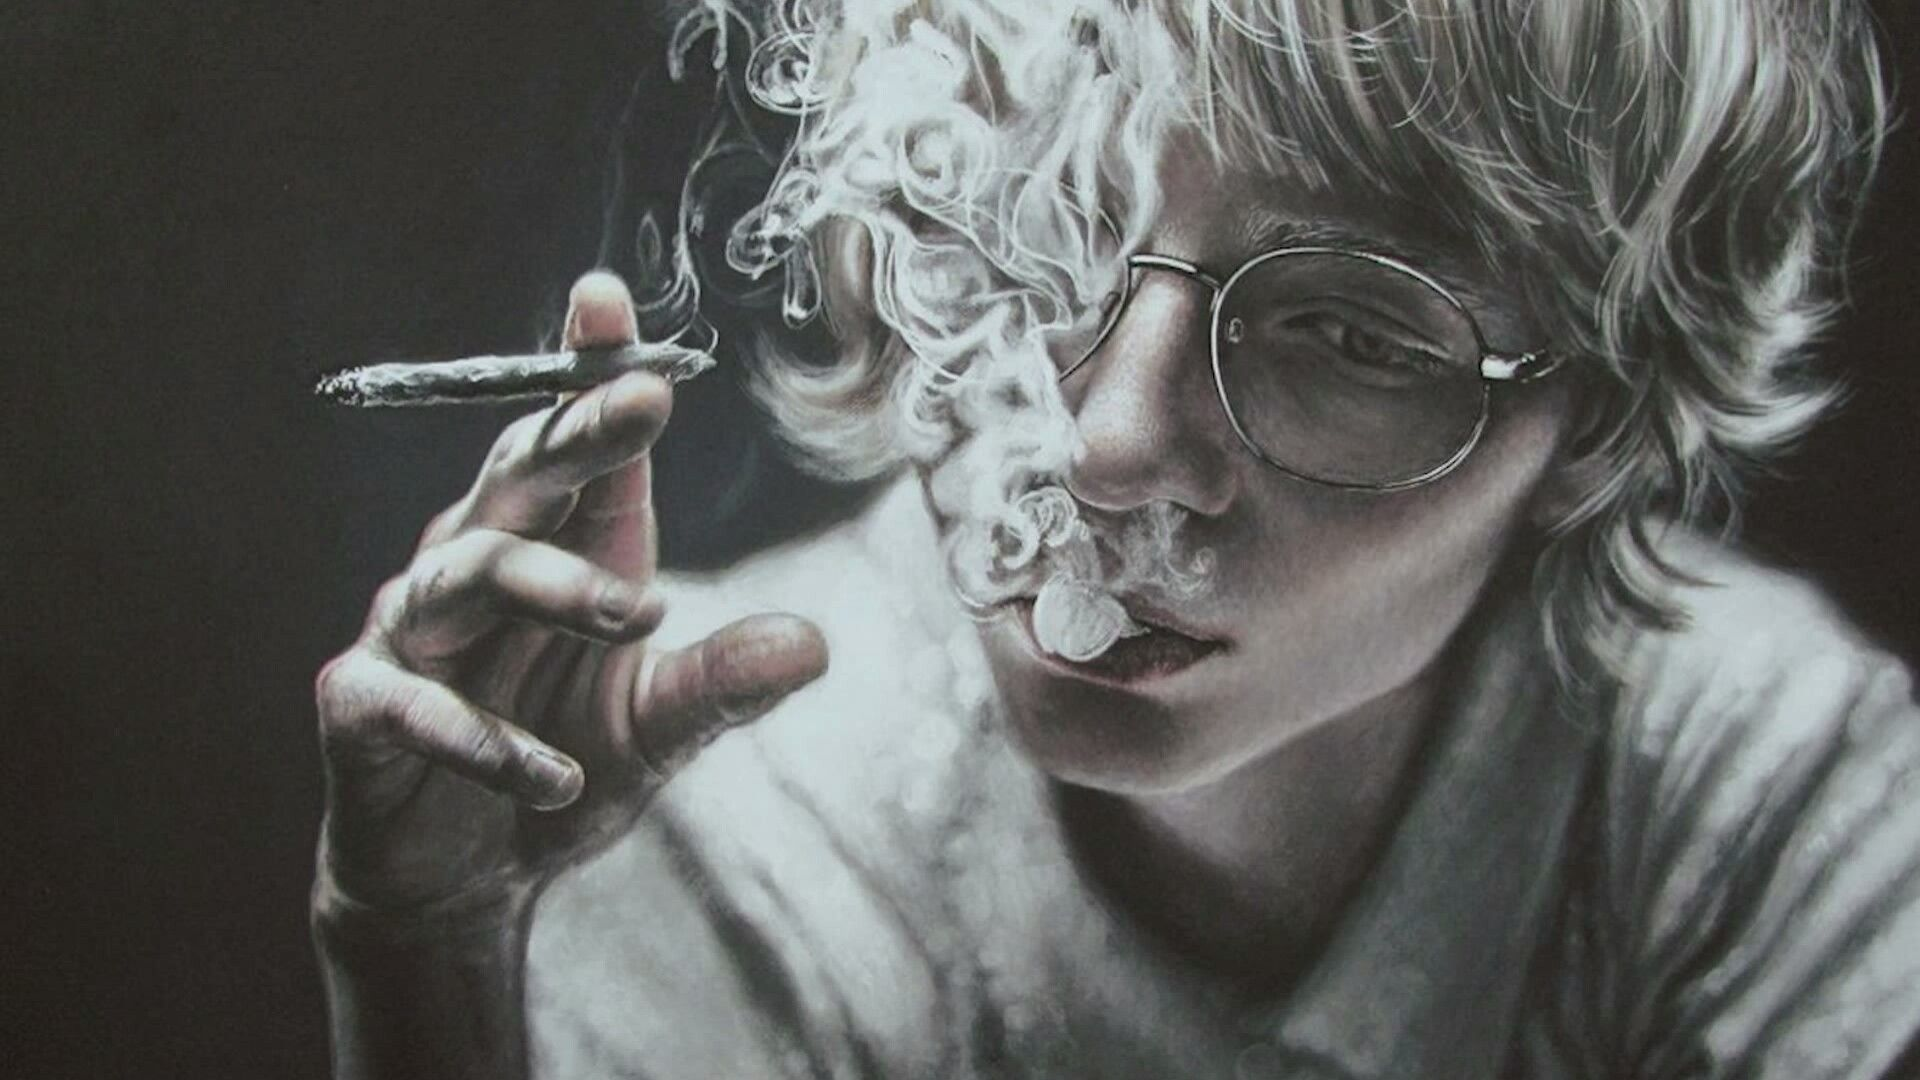 1920x1080 Smoking Face Portrait - Realistic Art Wallpaper | Wallpaper Studio ...